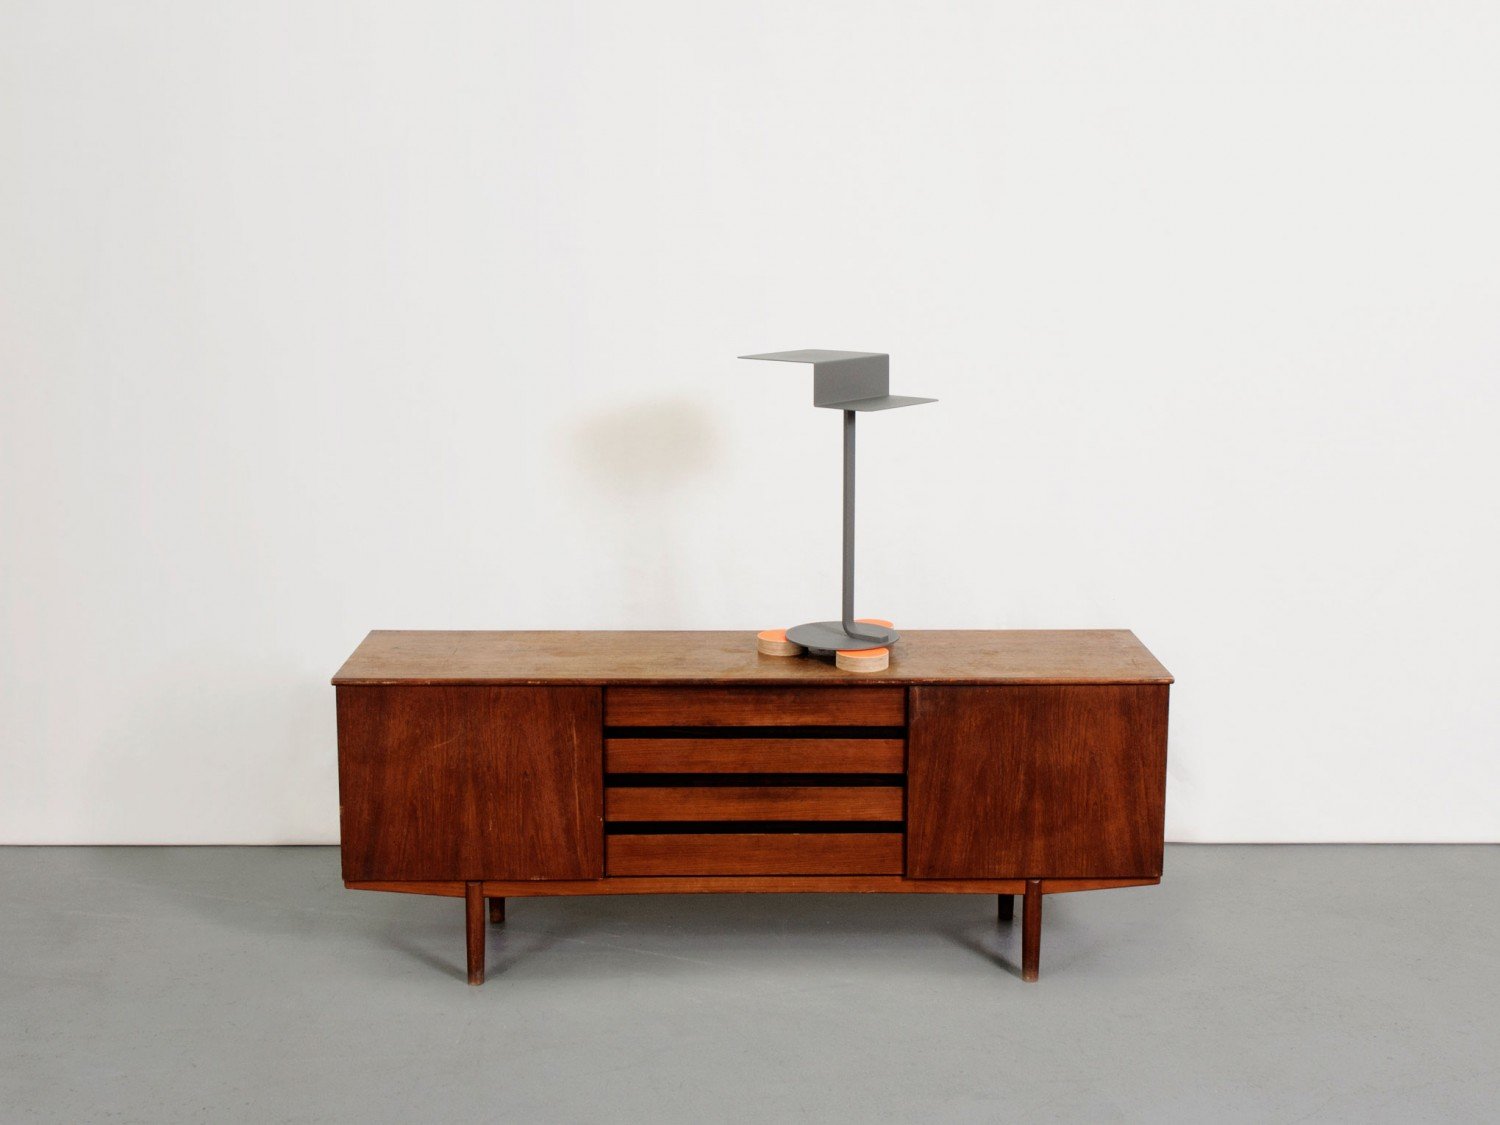 The arrangement of furniture in a museum scp life for The arrangement furniture store